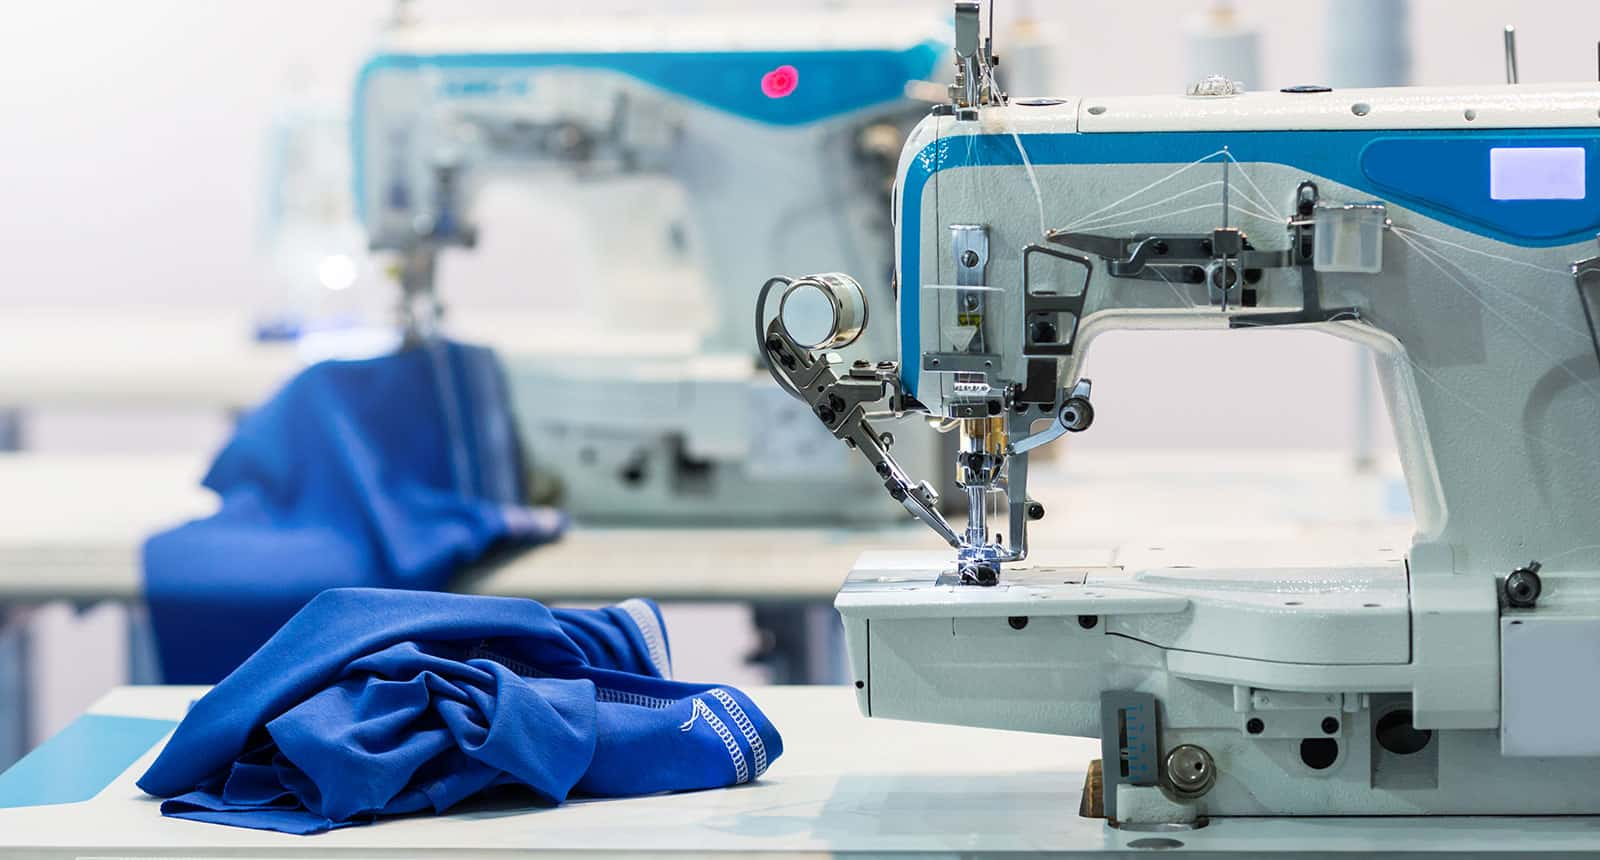 Which the Electric Sewing maker can refrain from doing